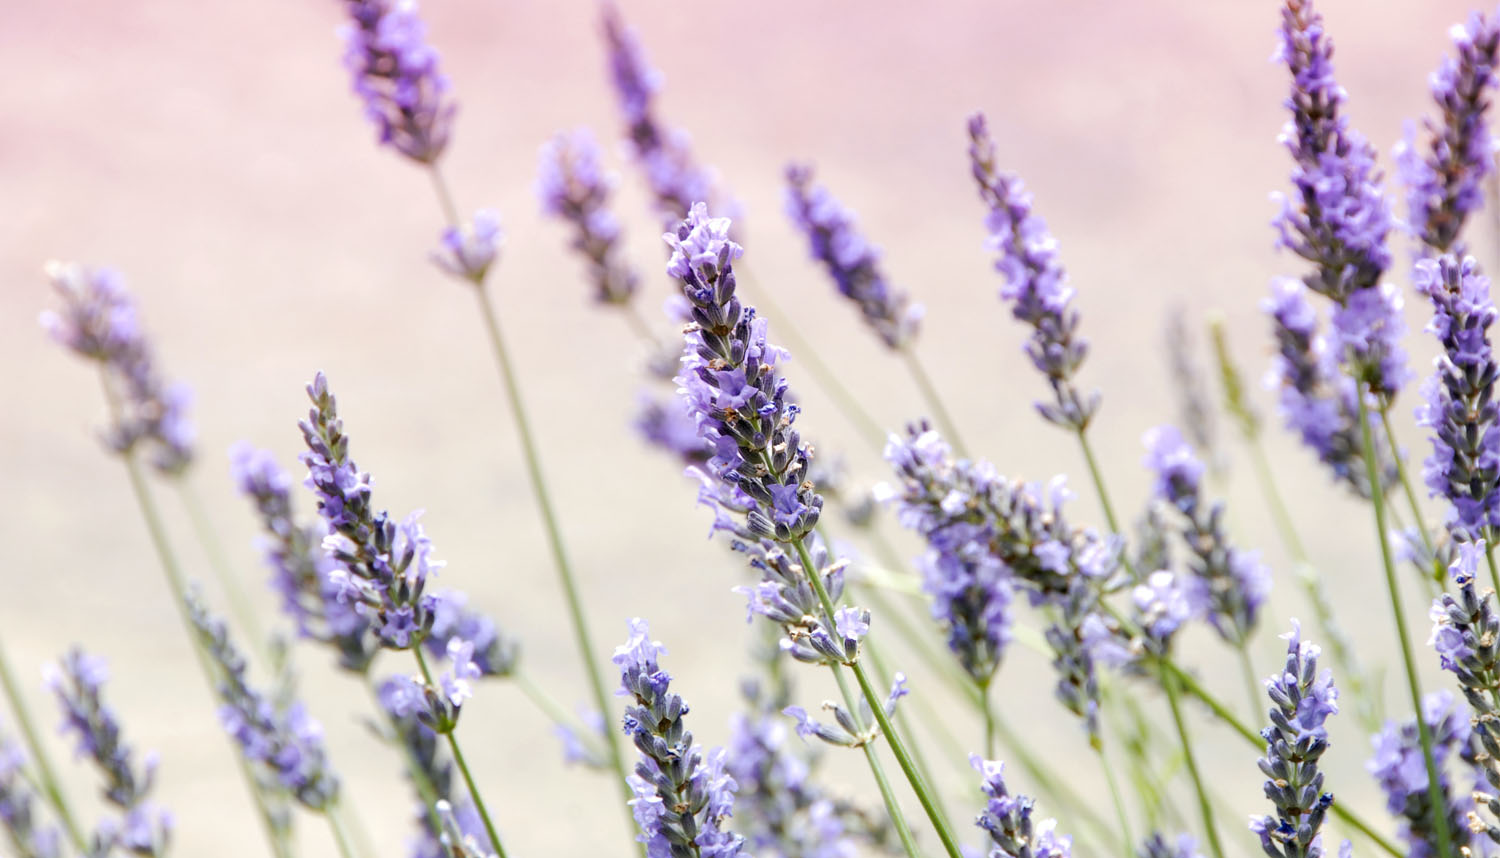 A Purple Lavender Field Representing Different Lavender Tea Benefits